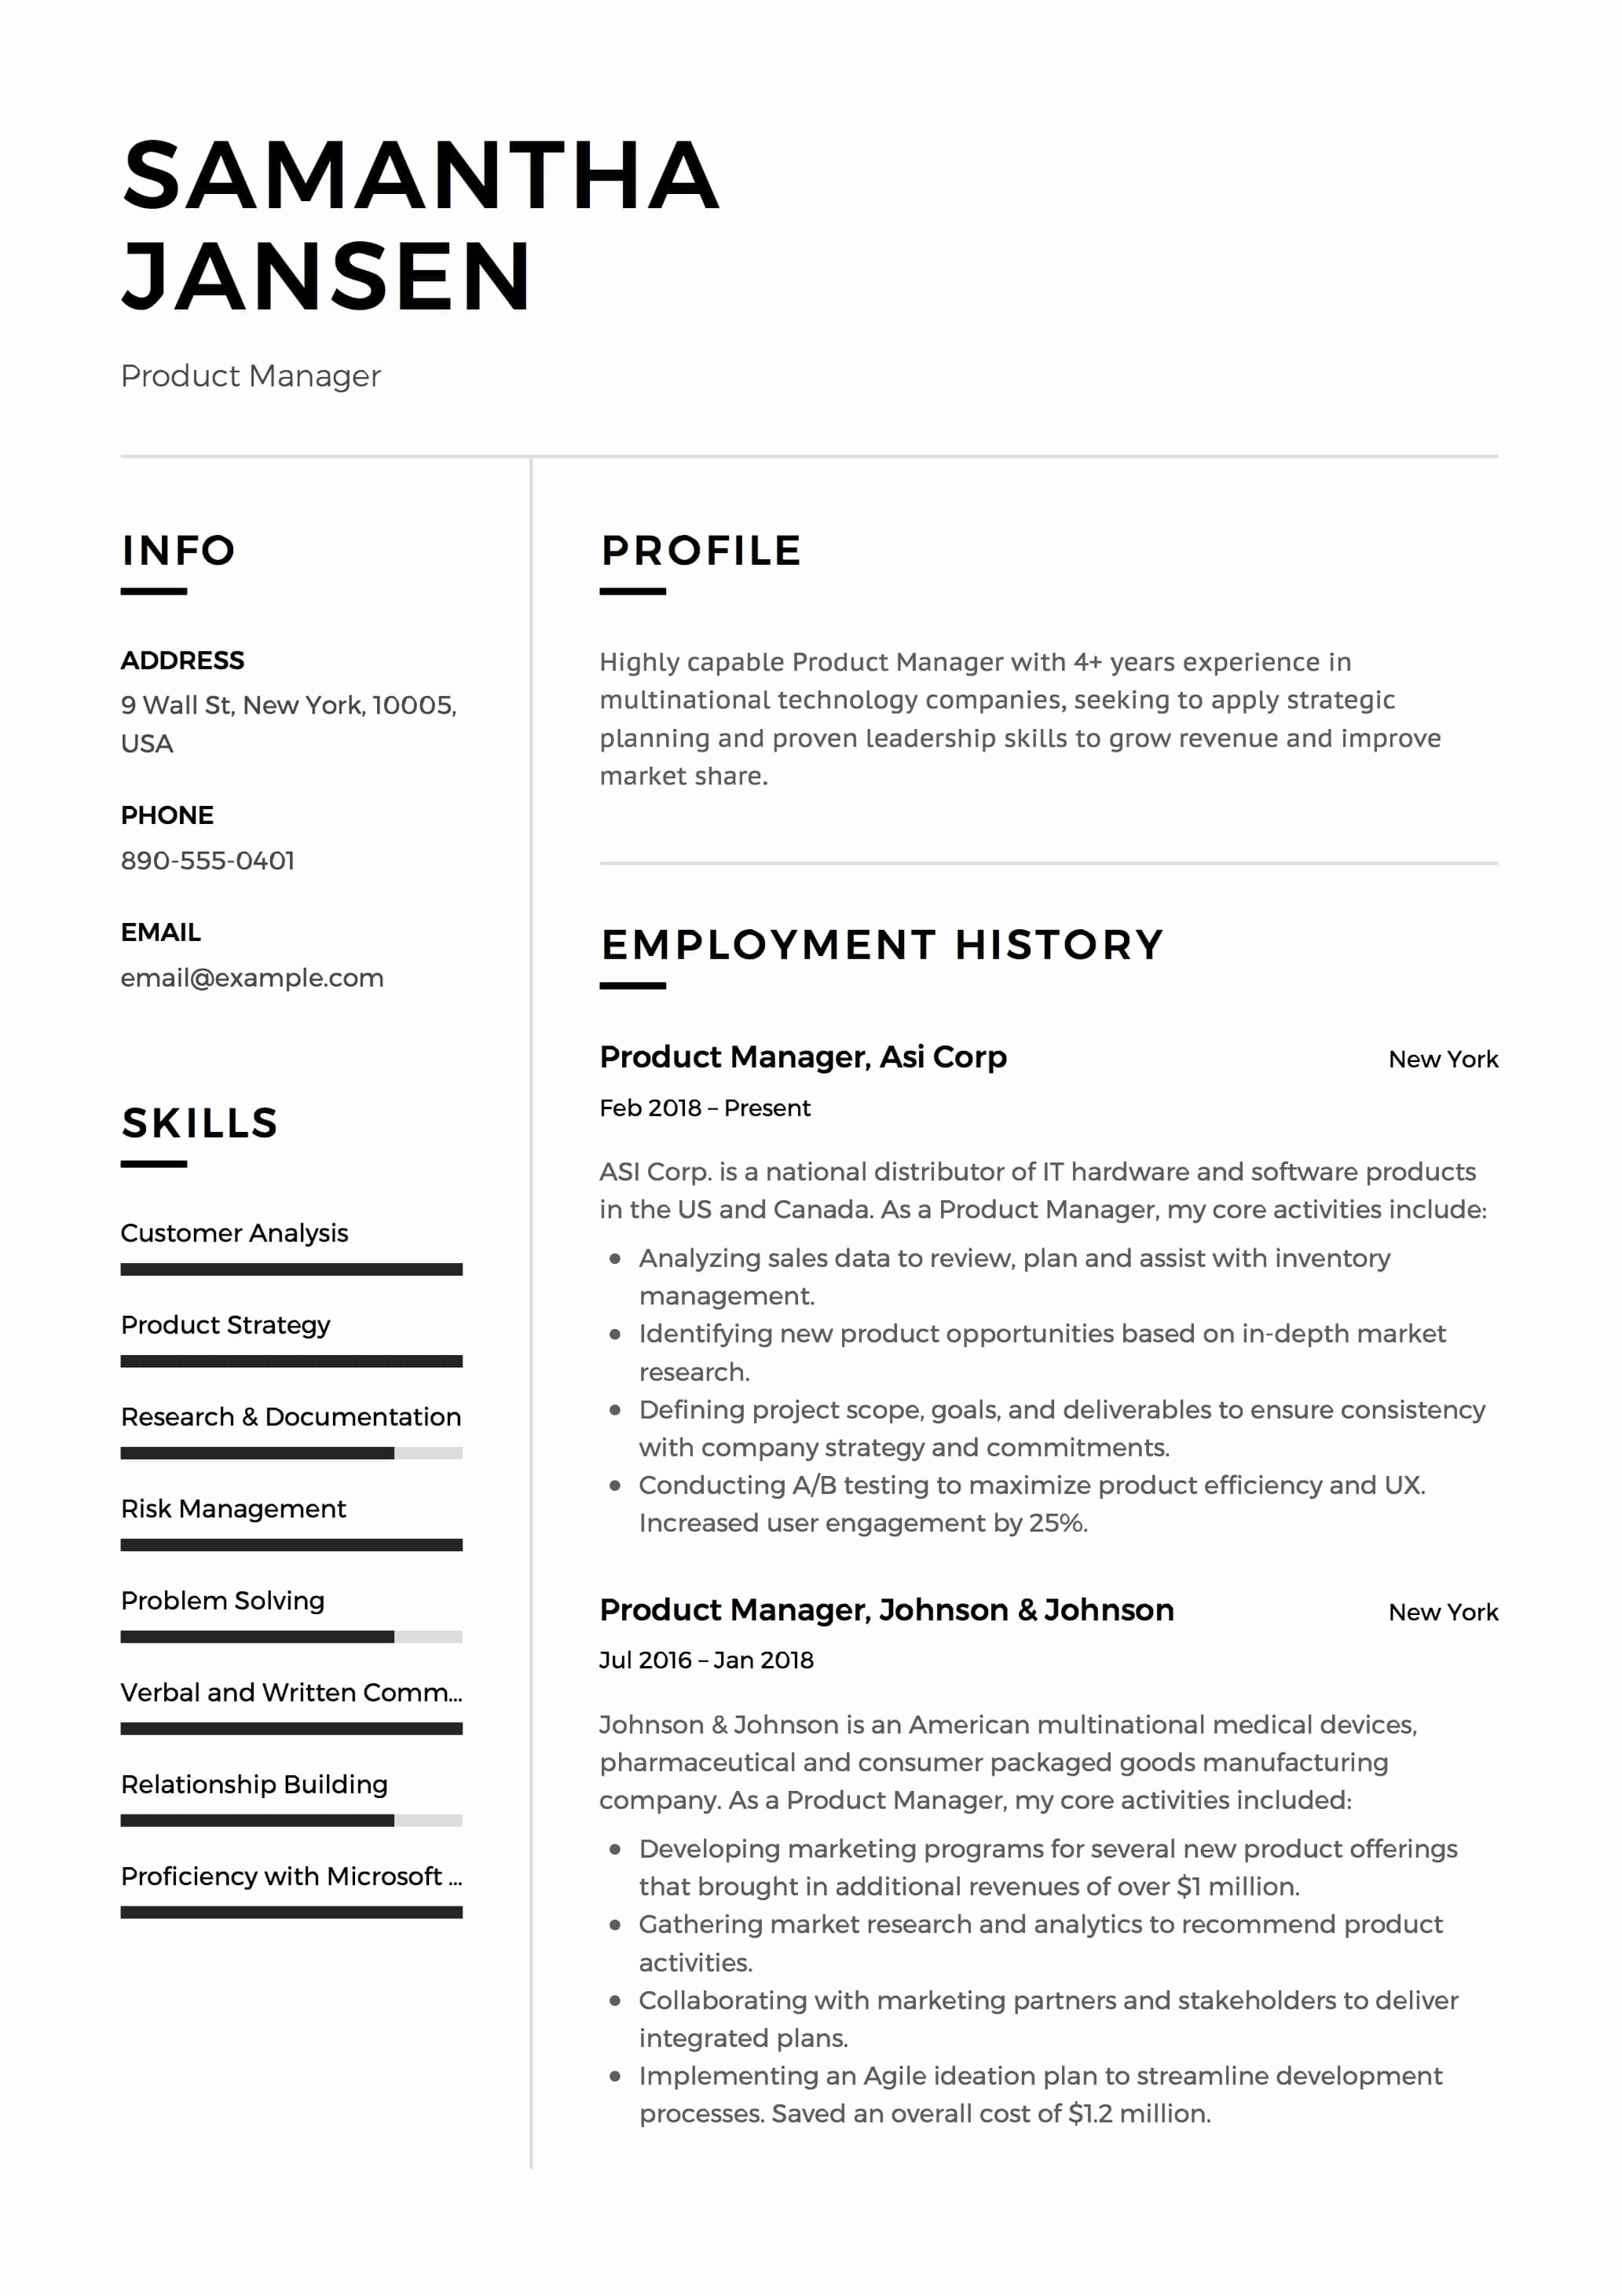 Product Manager Resume Template Beautiful 12 Product Manager Resume Sample S 2018 Free Downloads